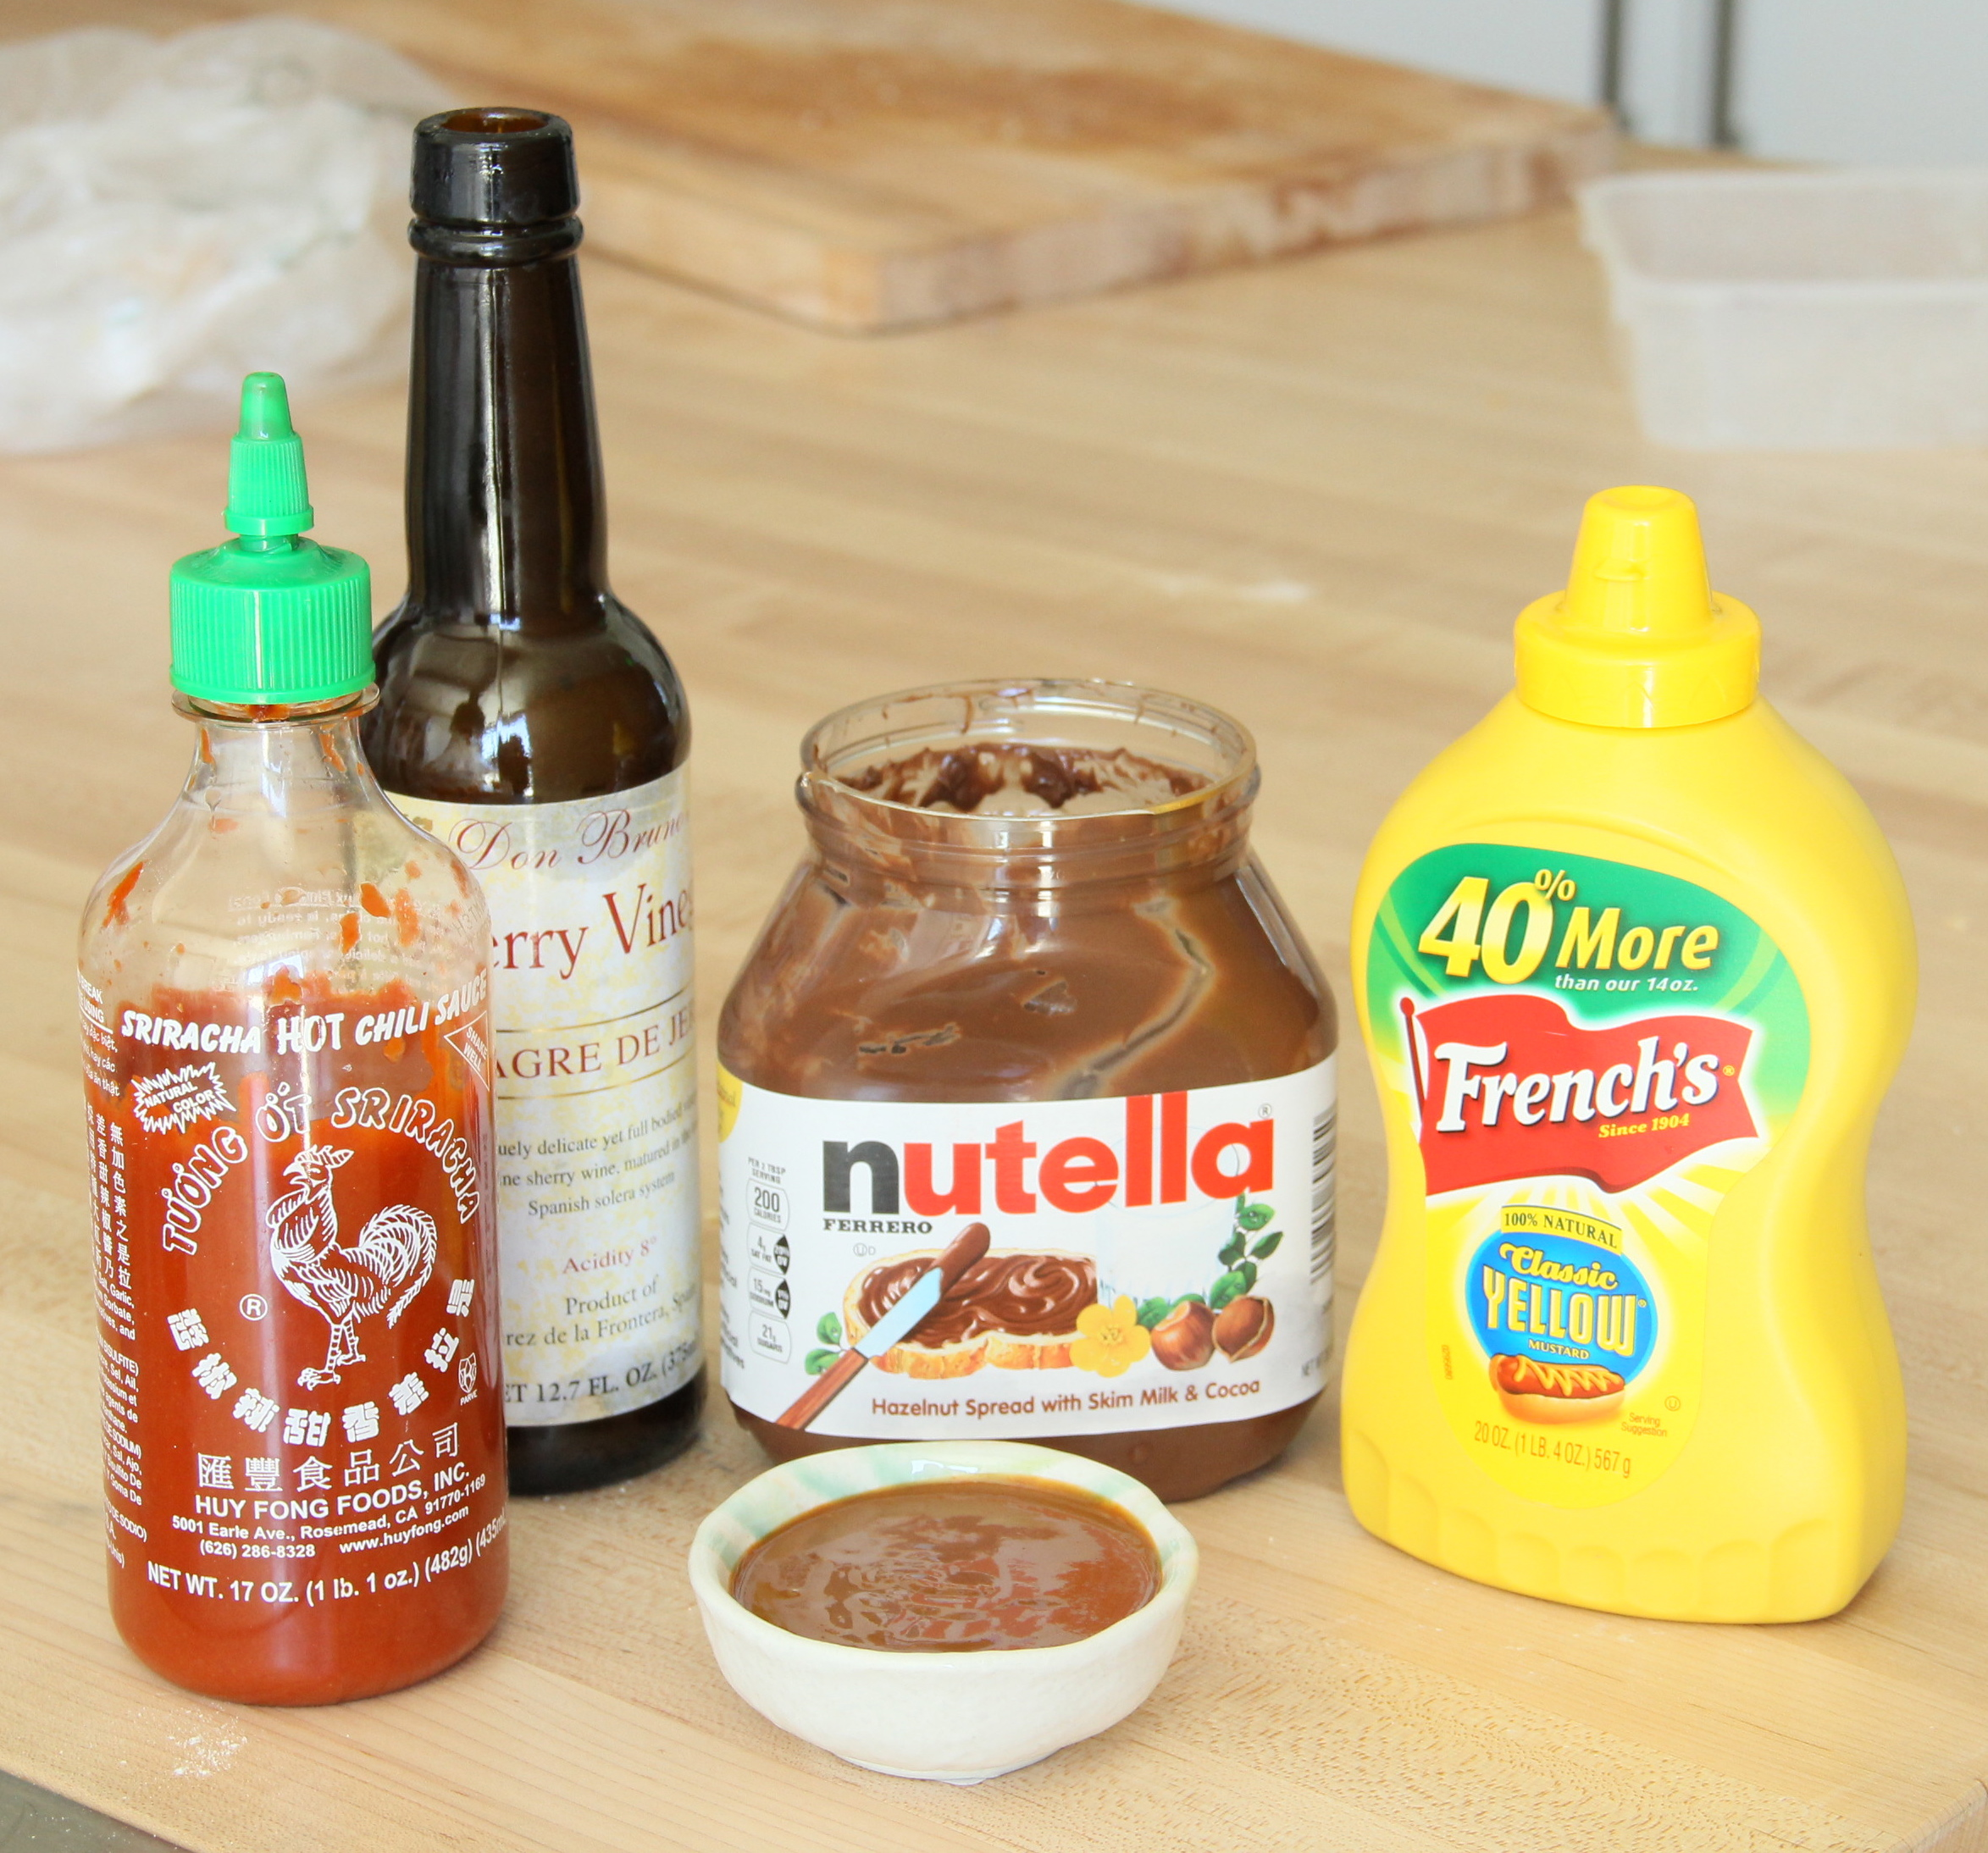 Nutella Barbecue Sauce